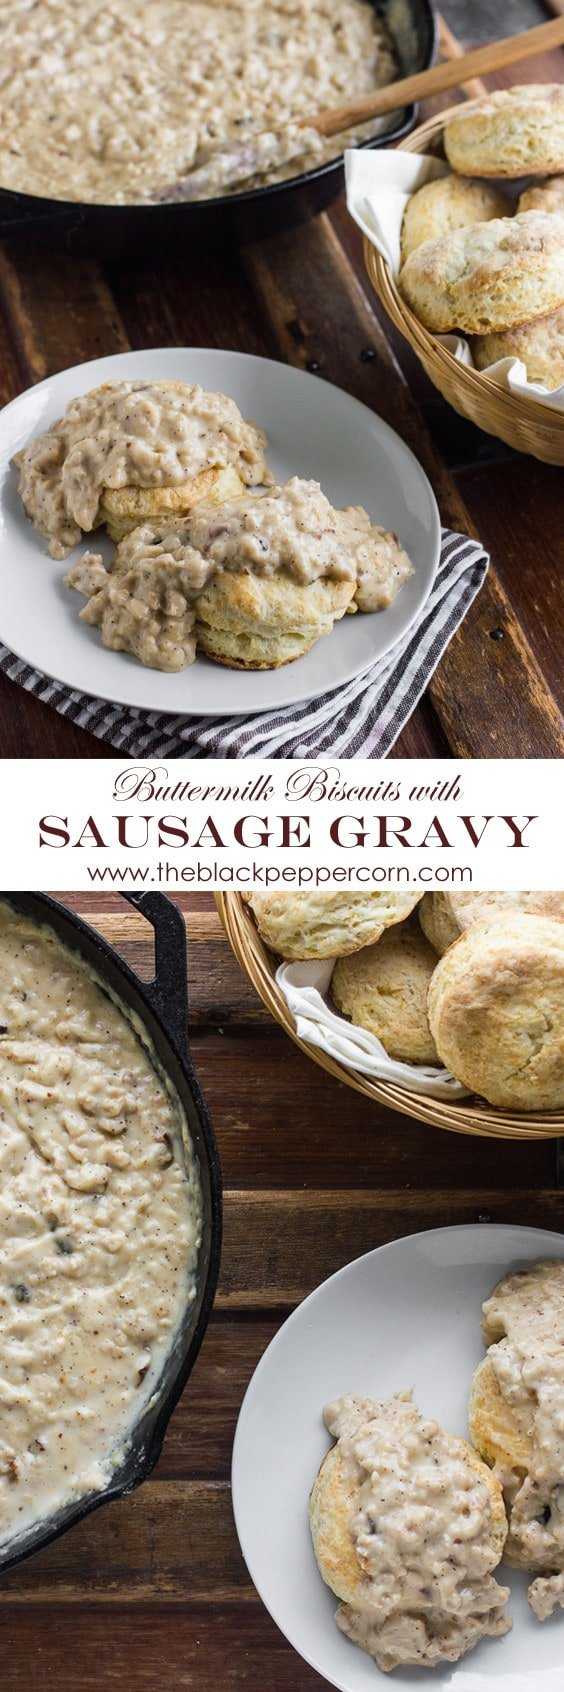 Sausage Gravy and Buttermilk Biscuits